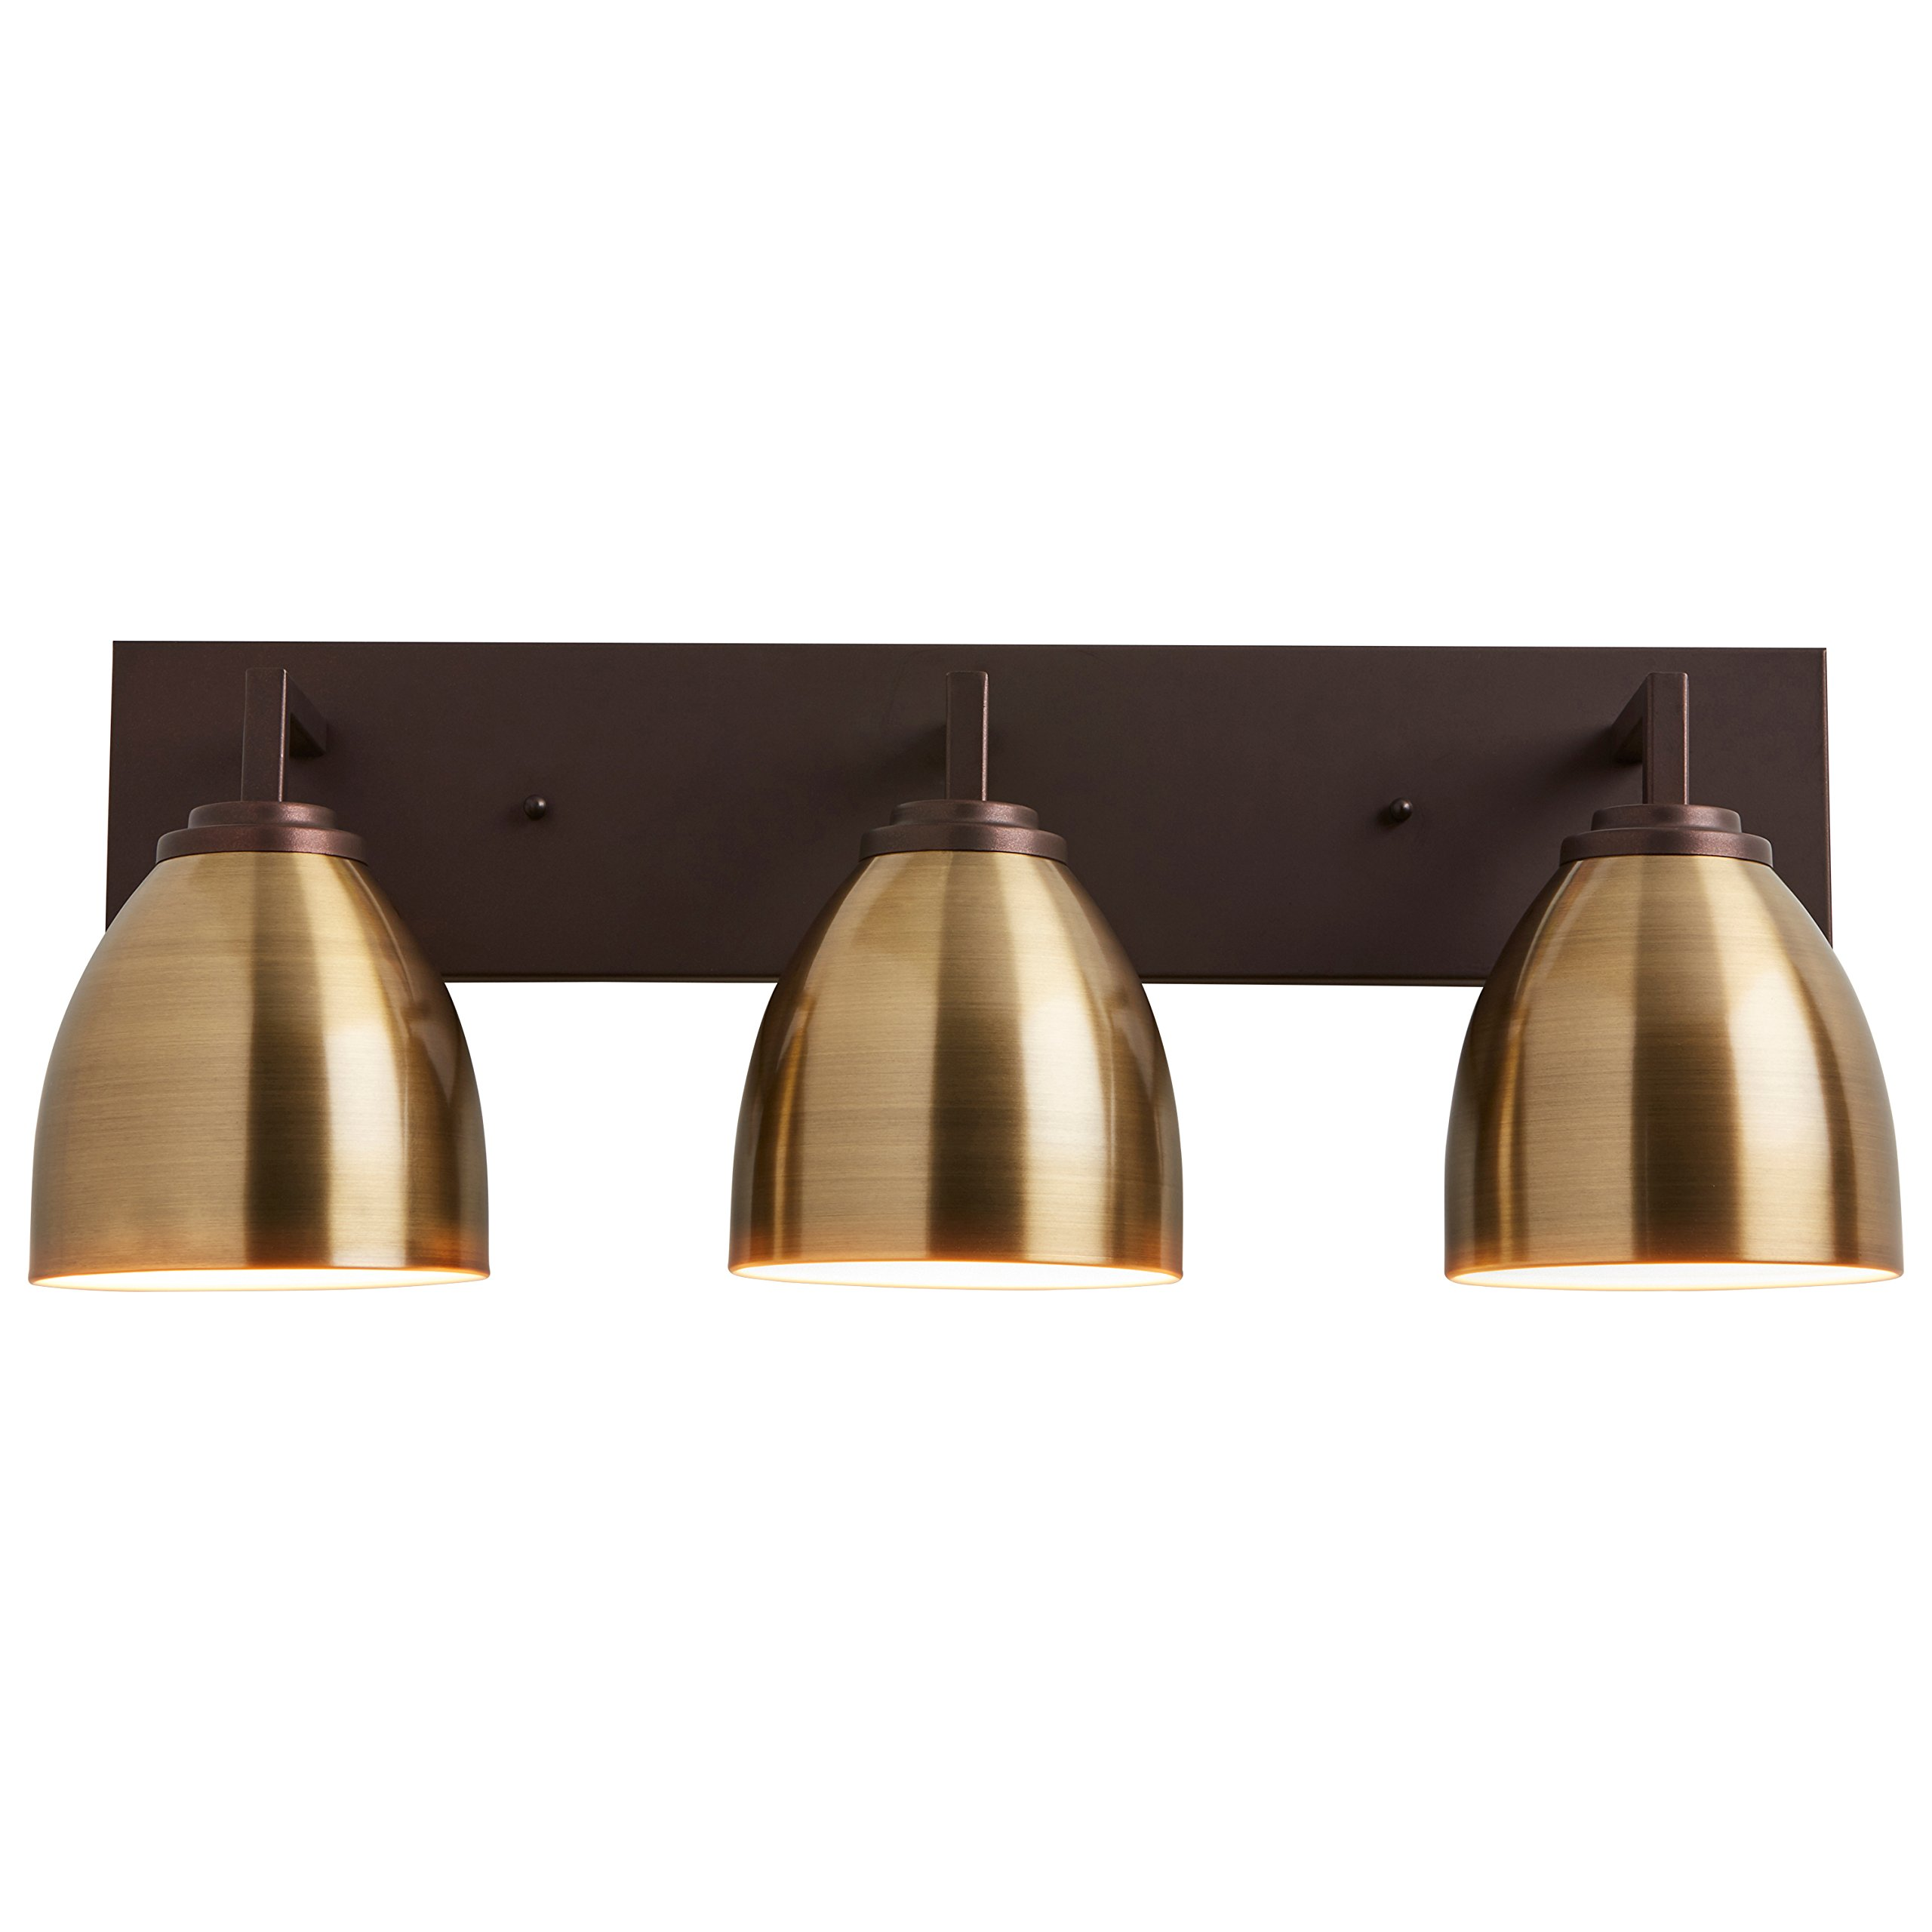 Stone & Beam Contemporary 3-Light Vanity Fixture, 9.25''H, With Bulbs, Oil Rubbed Bronze